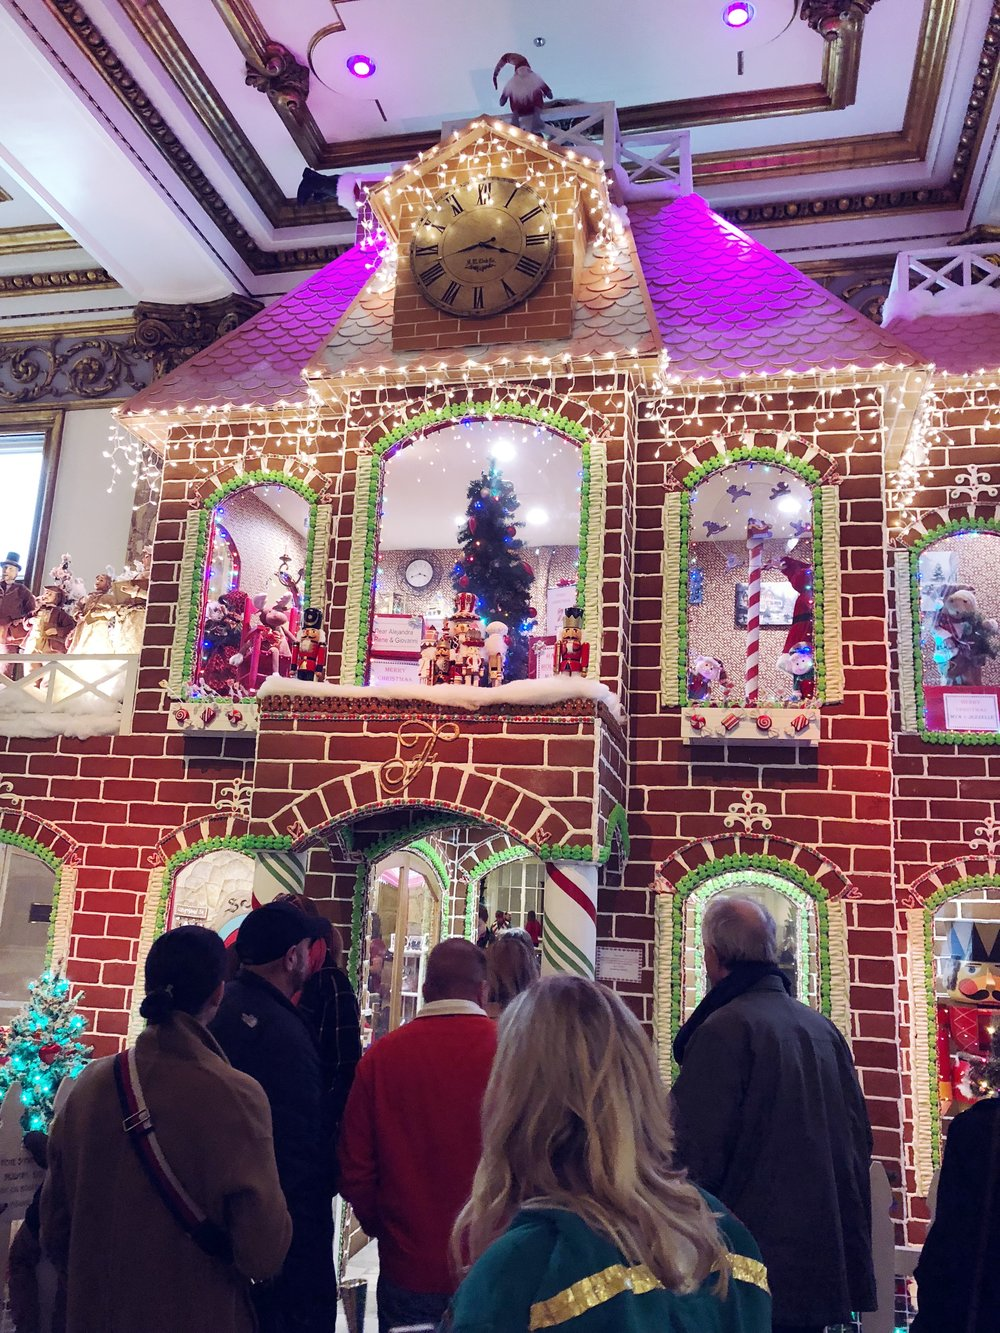 The real reason I walked all the way to The Fairmont… They have a life-size gingerbread house in the lobby! It's made with real gingerbread and candy.